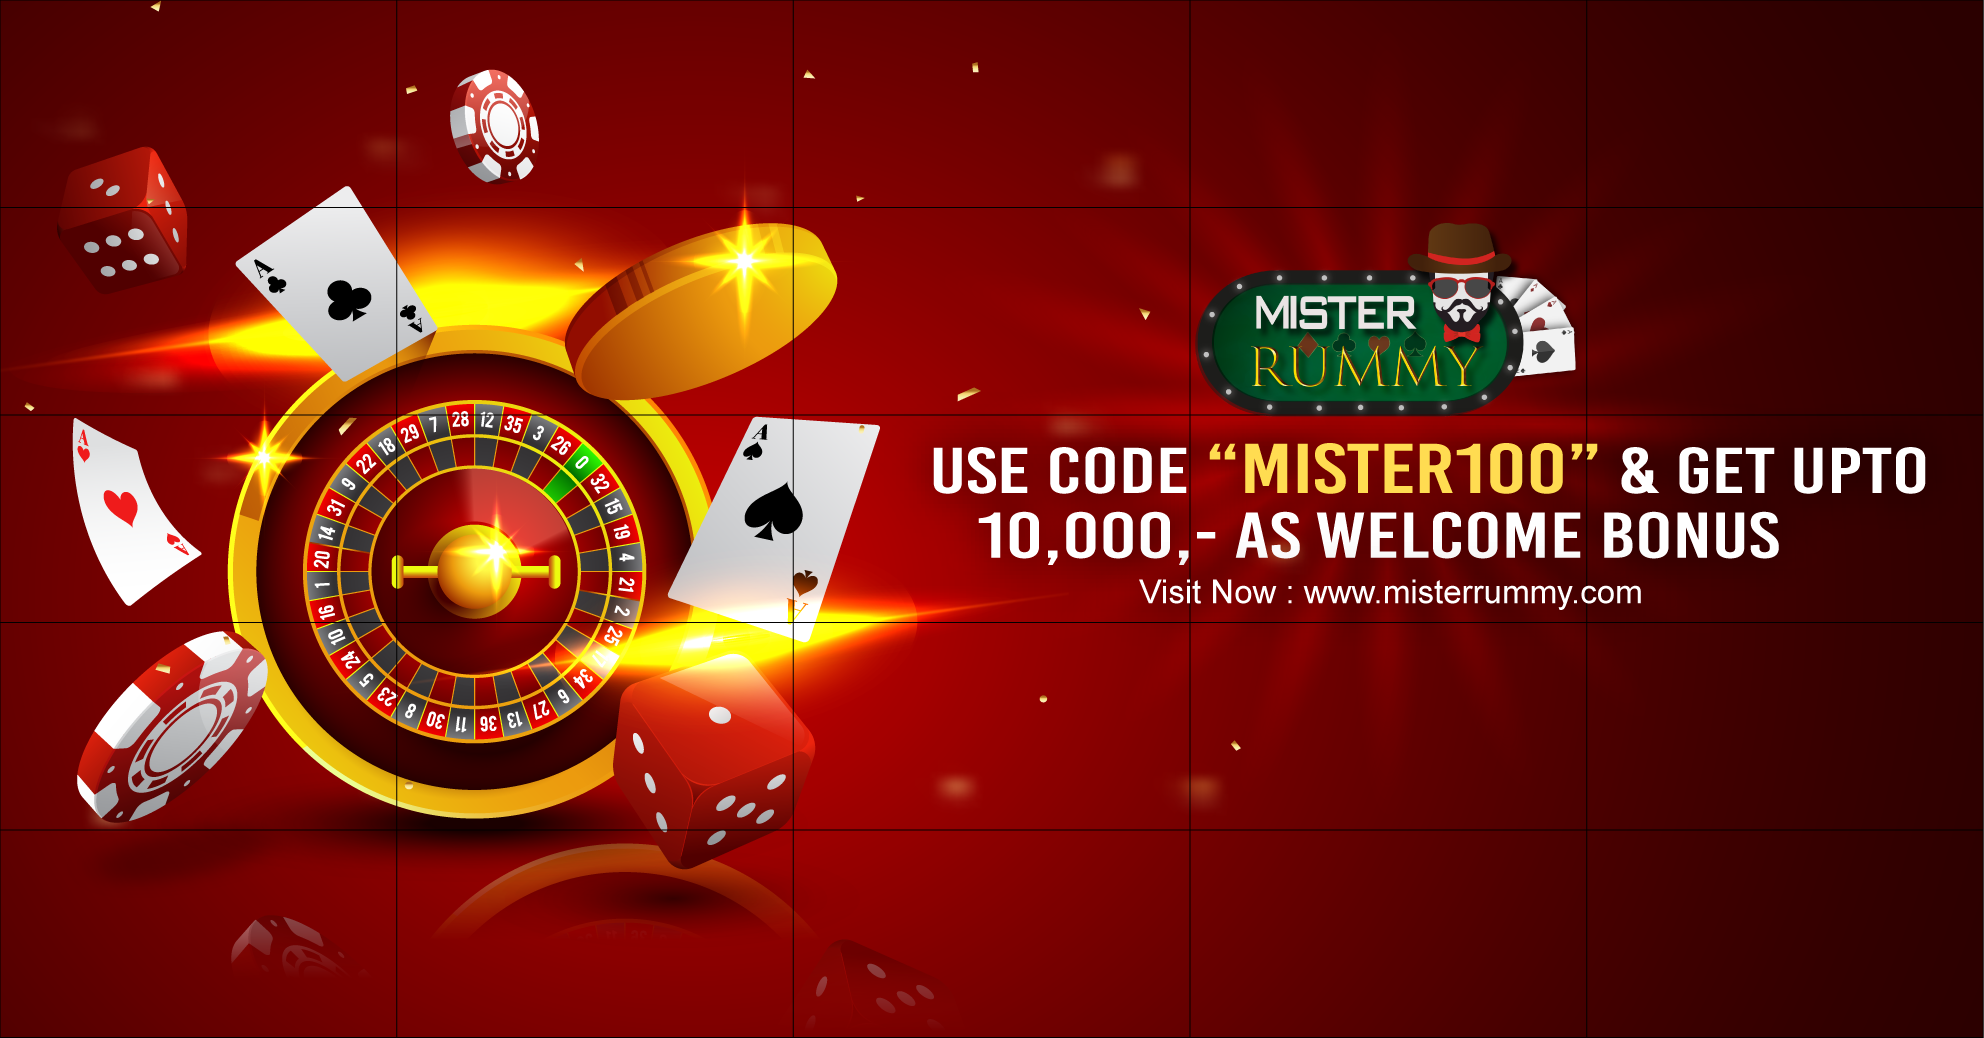 Mister Rummy is India's premium website that offers an